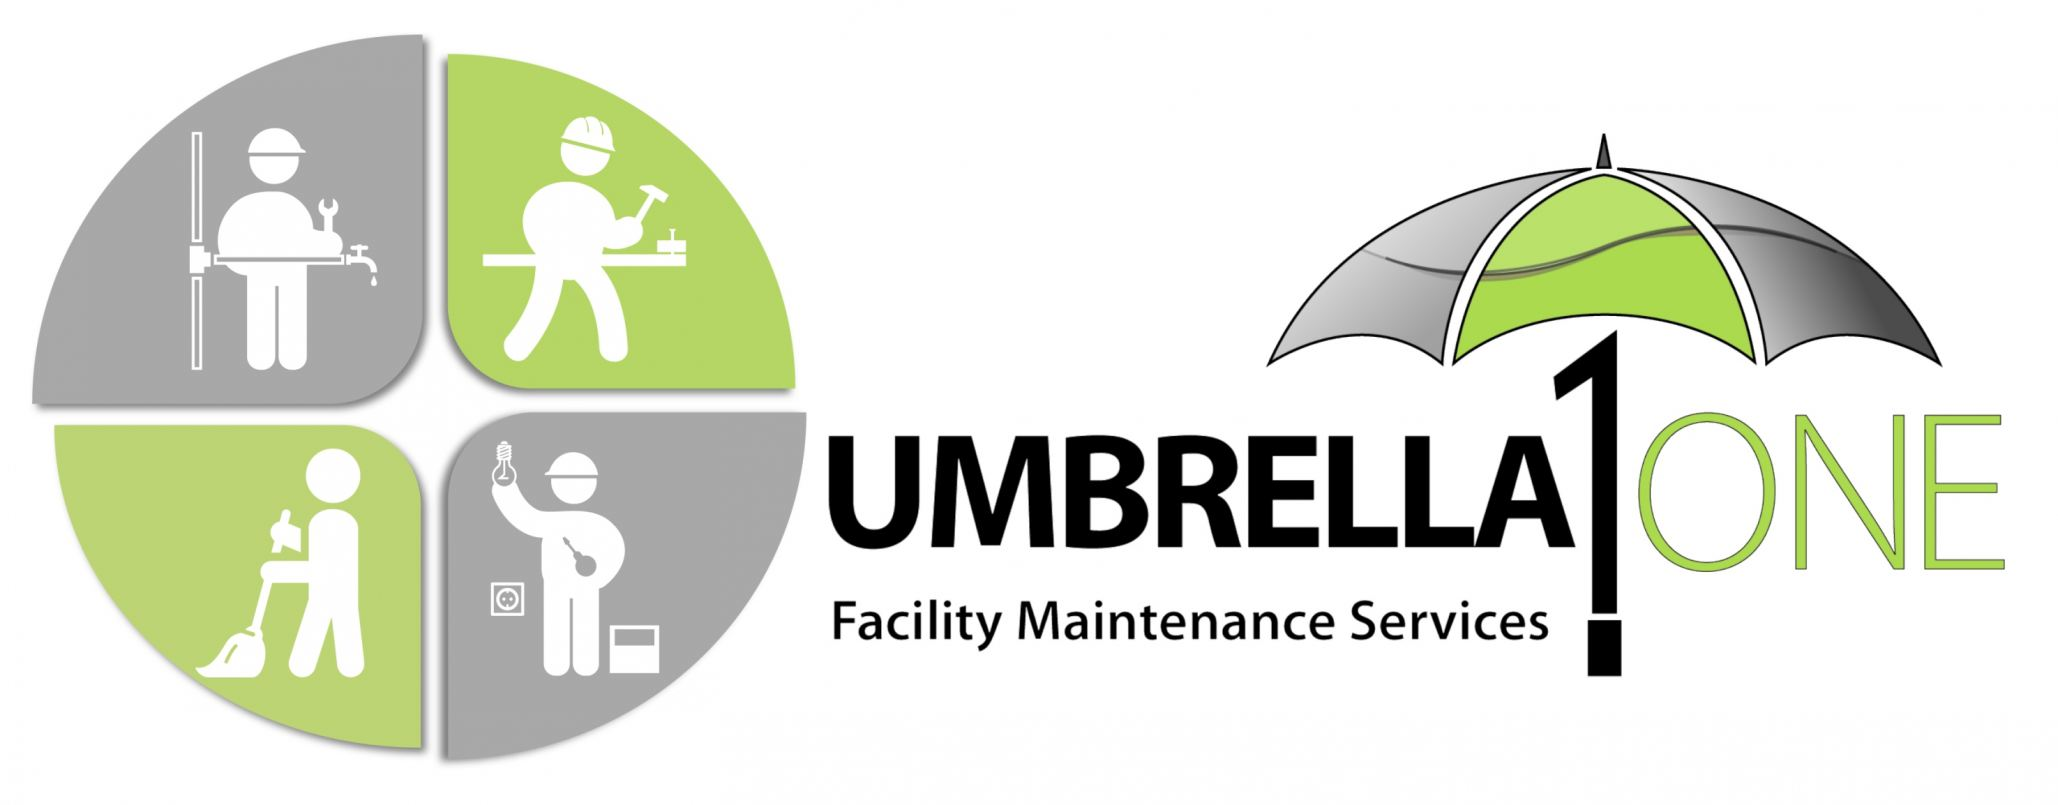 UmbrellaOne: Facility Maintenance Services Logo